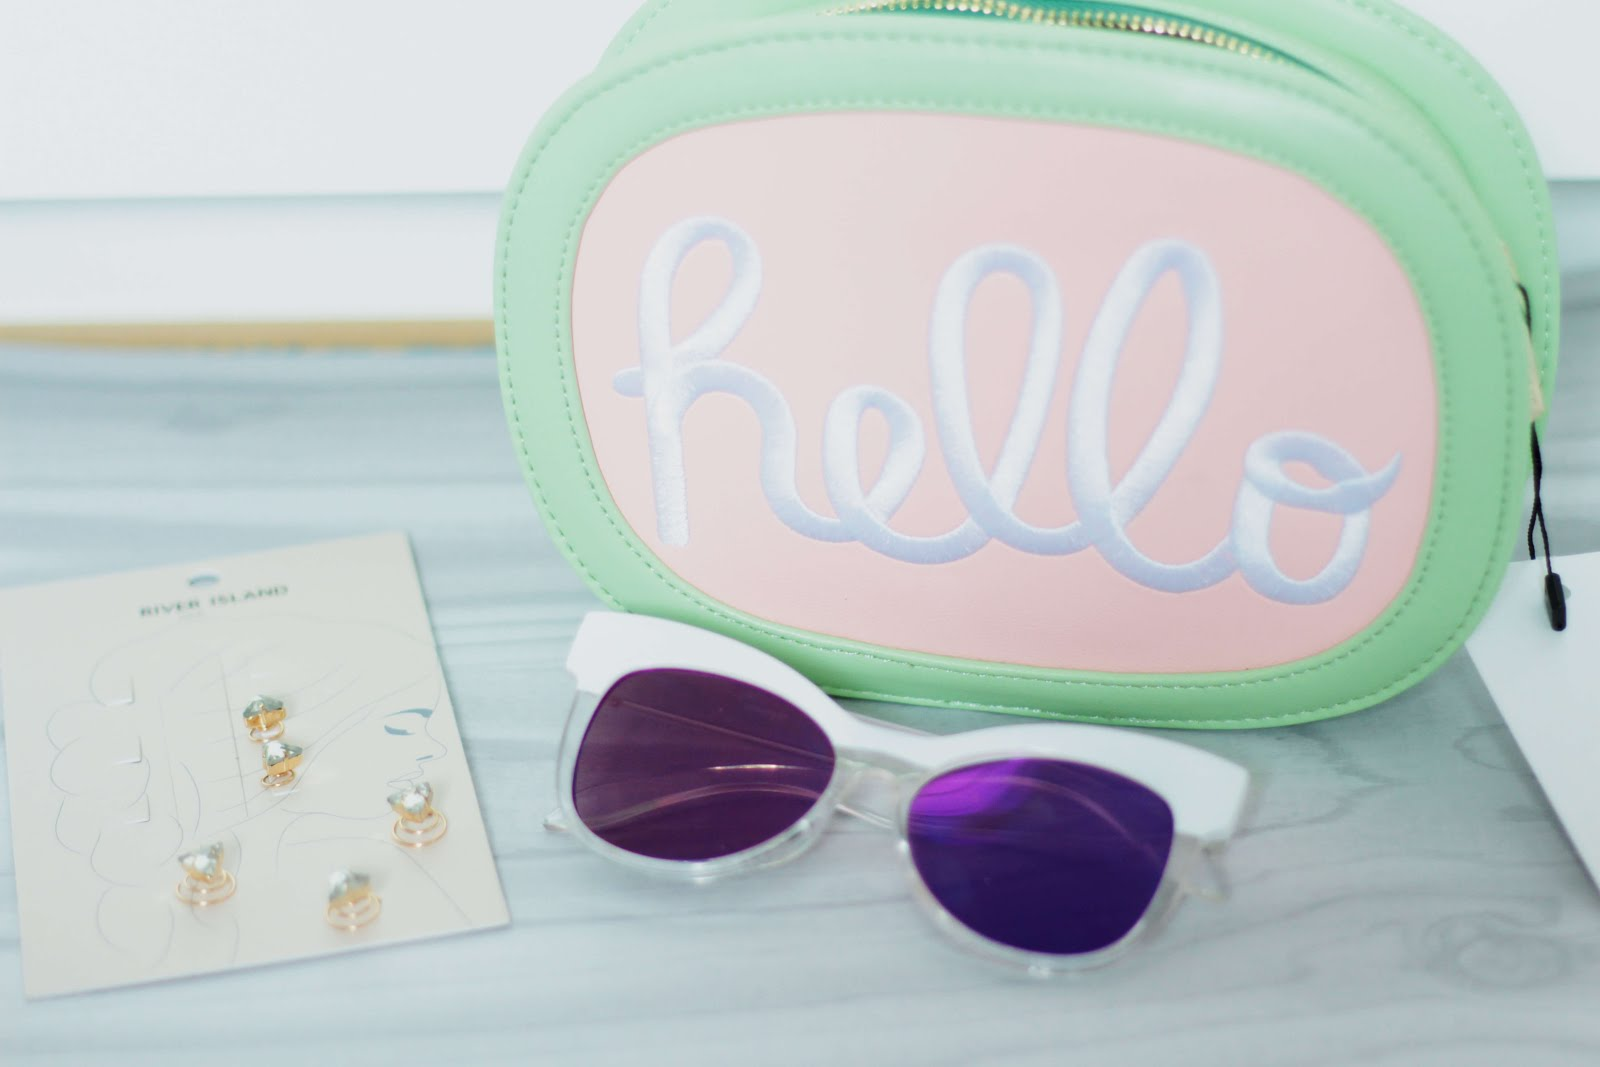 asos summer sale accessories haul uk fashion blogger